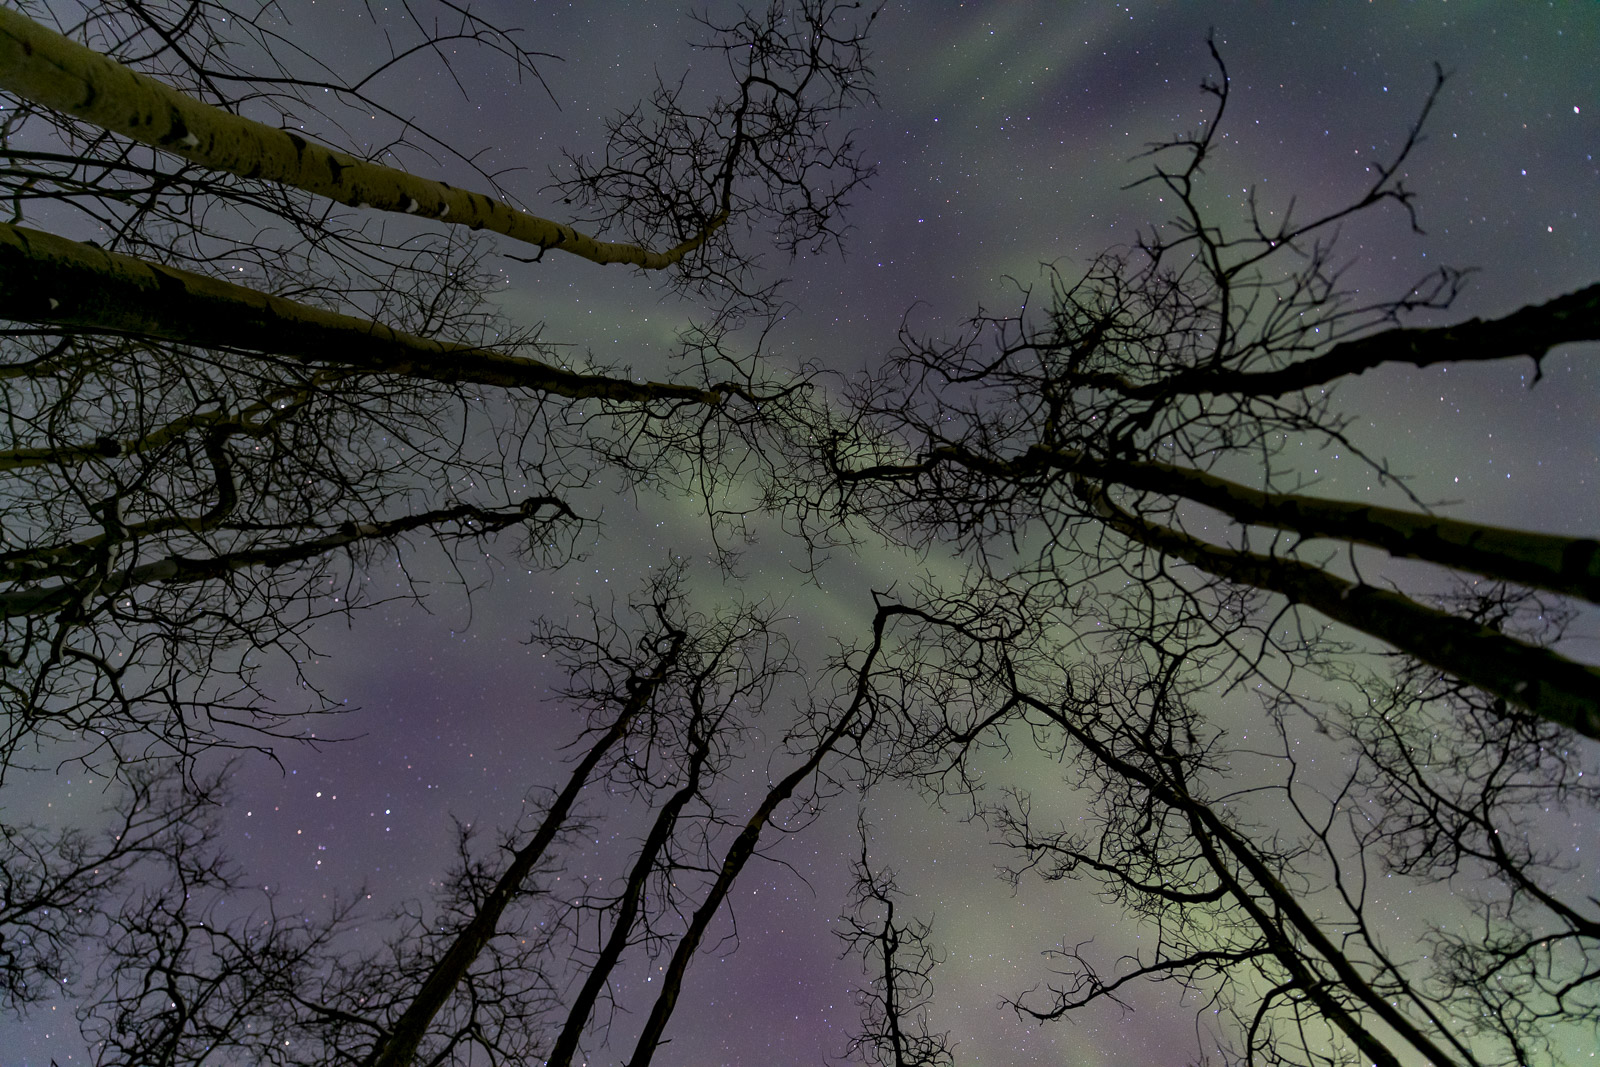 While heading back home after a long night of aurroa chasing, I came upon a grove of twisted aspen trees. I studied them for...